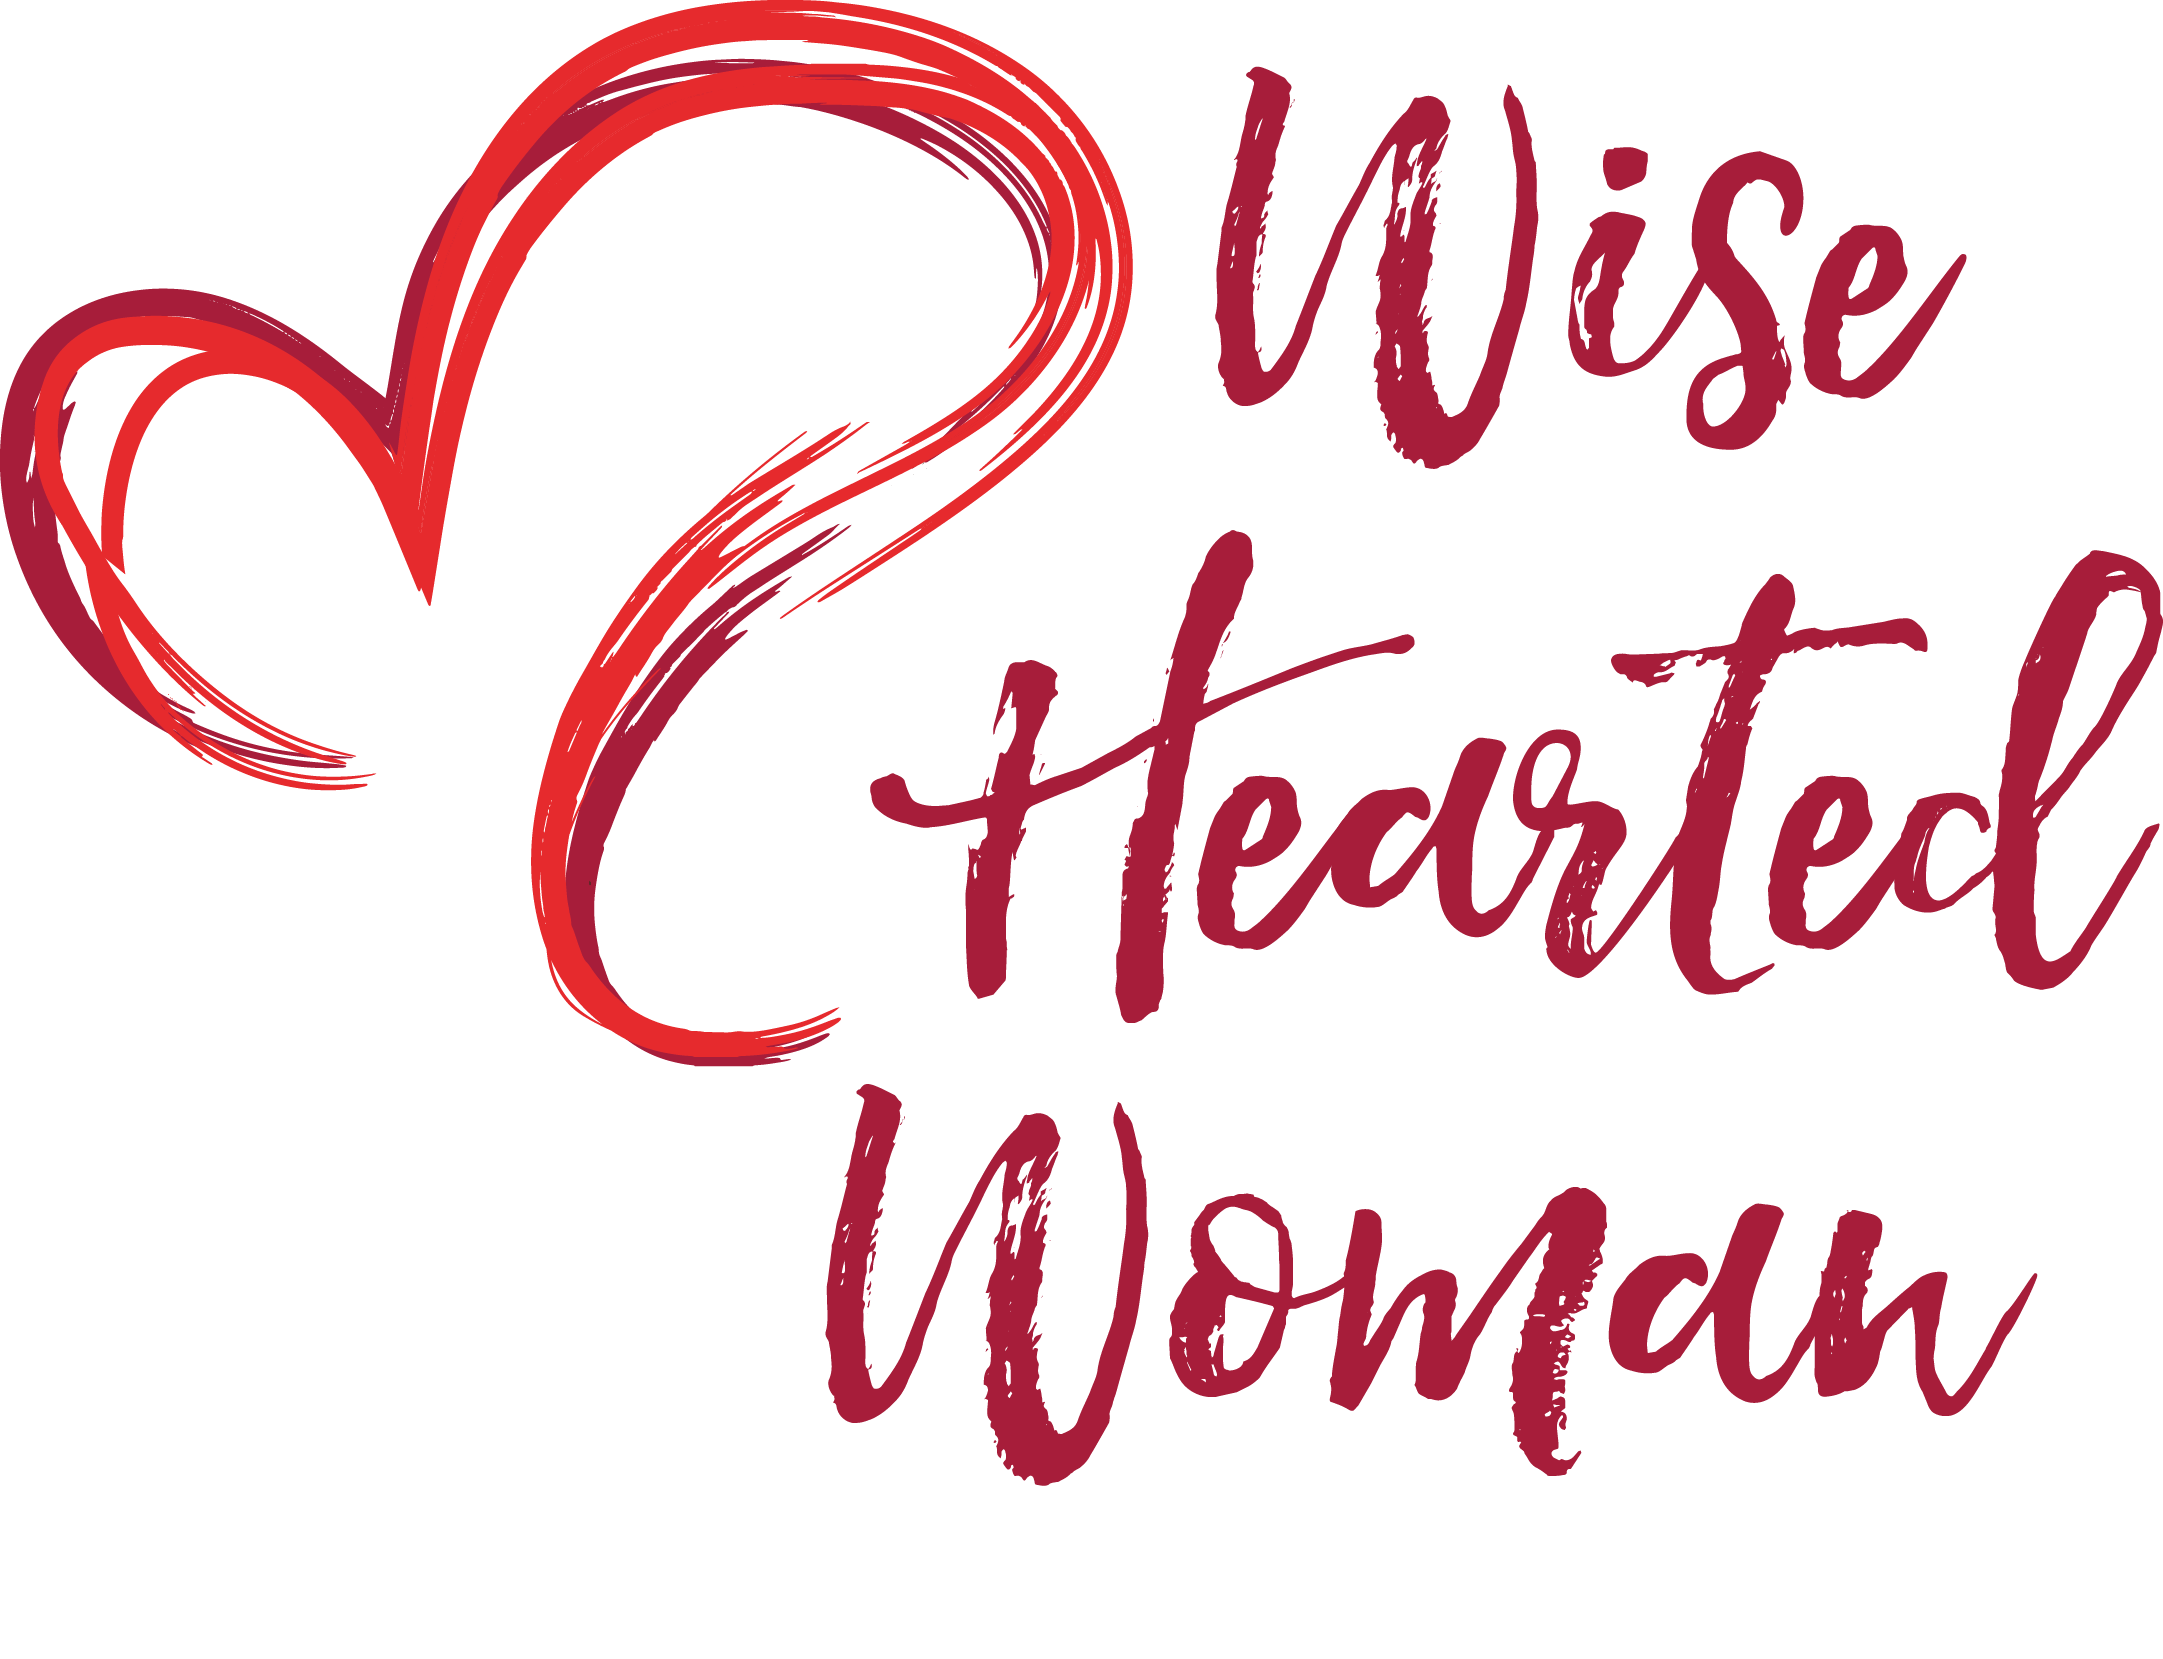 Wise hearted woman embrace. Clipart heart calligraphy